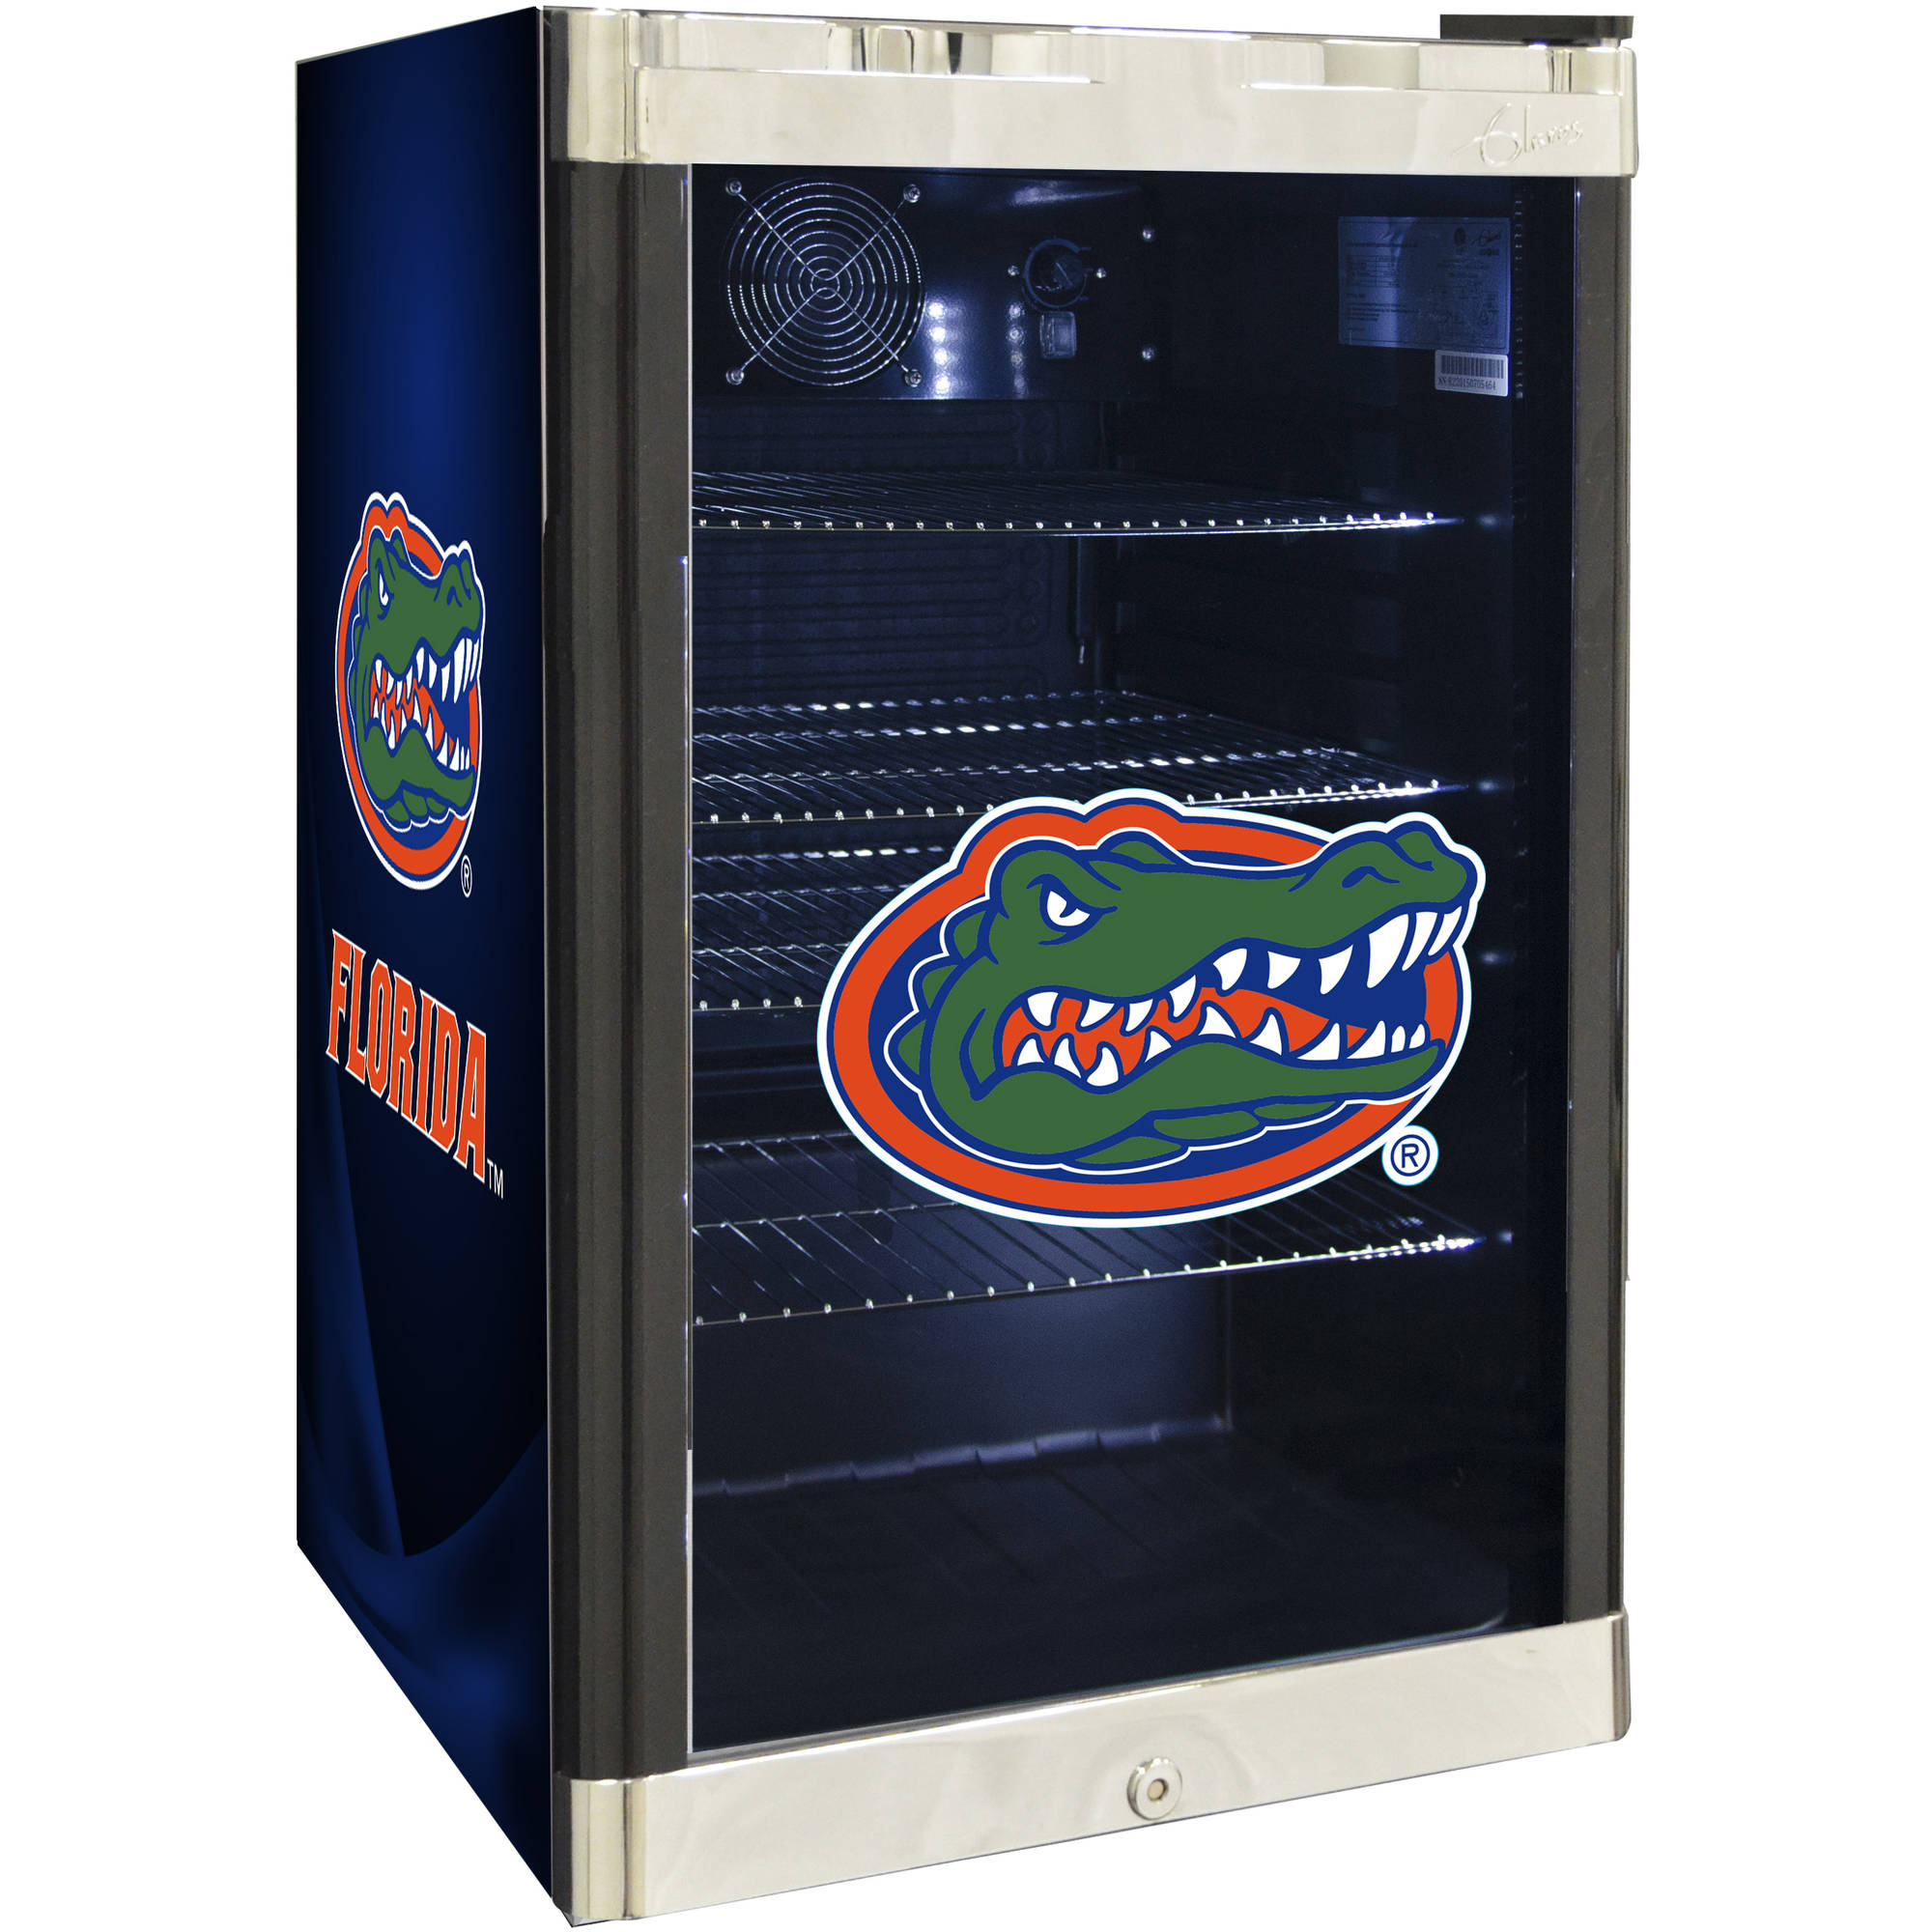 NCAA Refrigerated Beverage Center, 4.6 cu ft, University of Florida